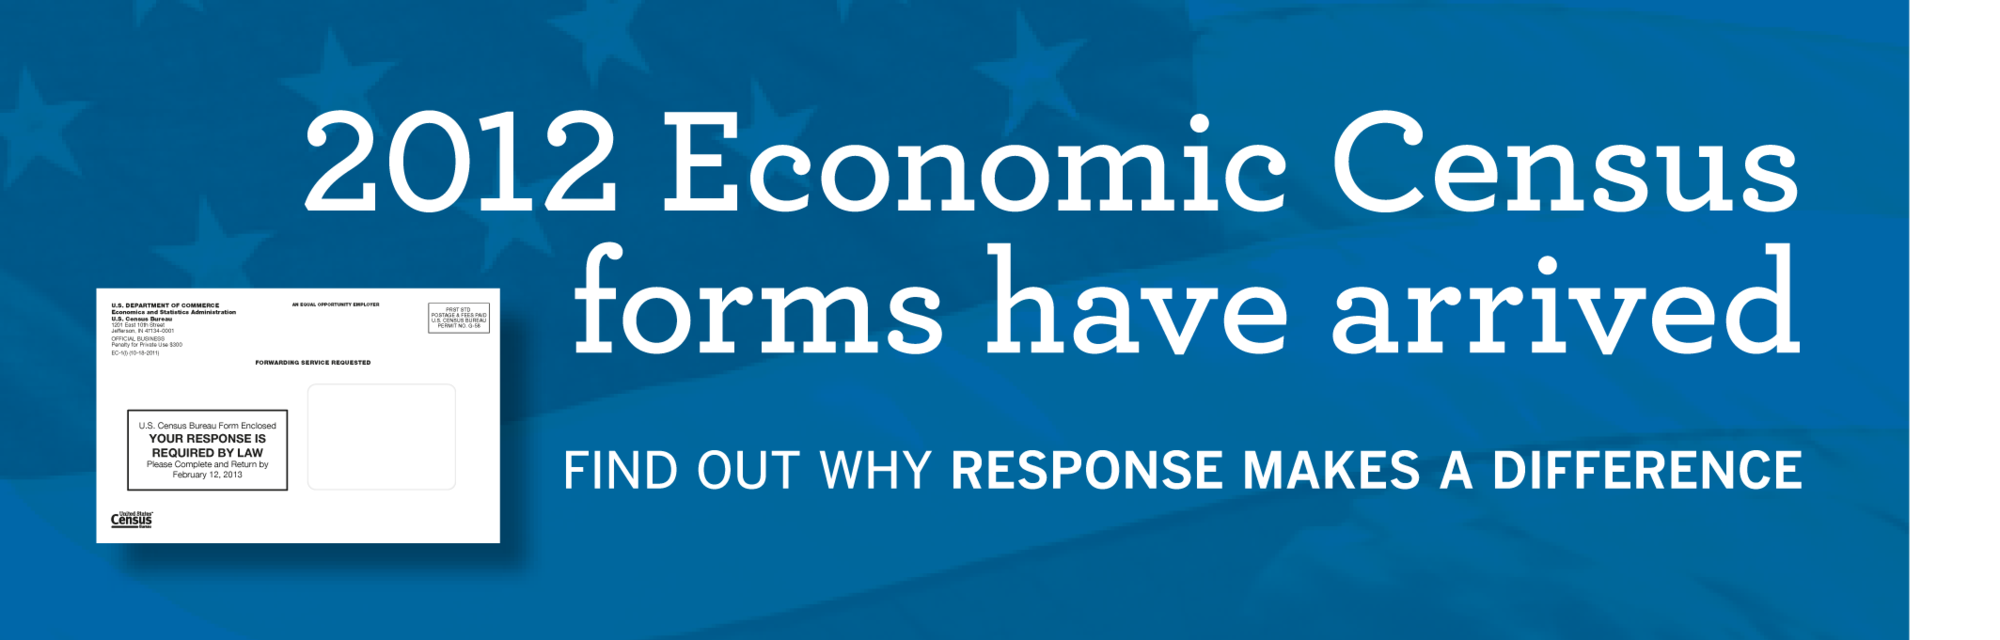 2012 Economic Census forms have arrived. Find out why response makes a difference.